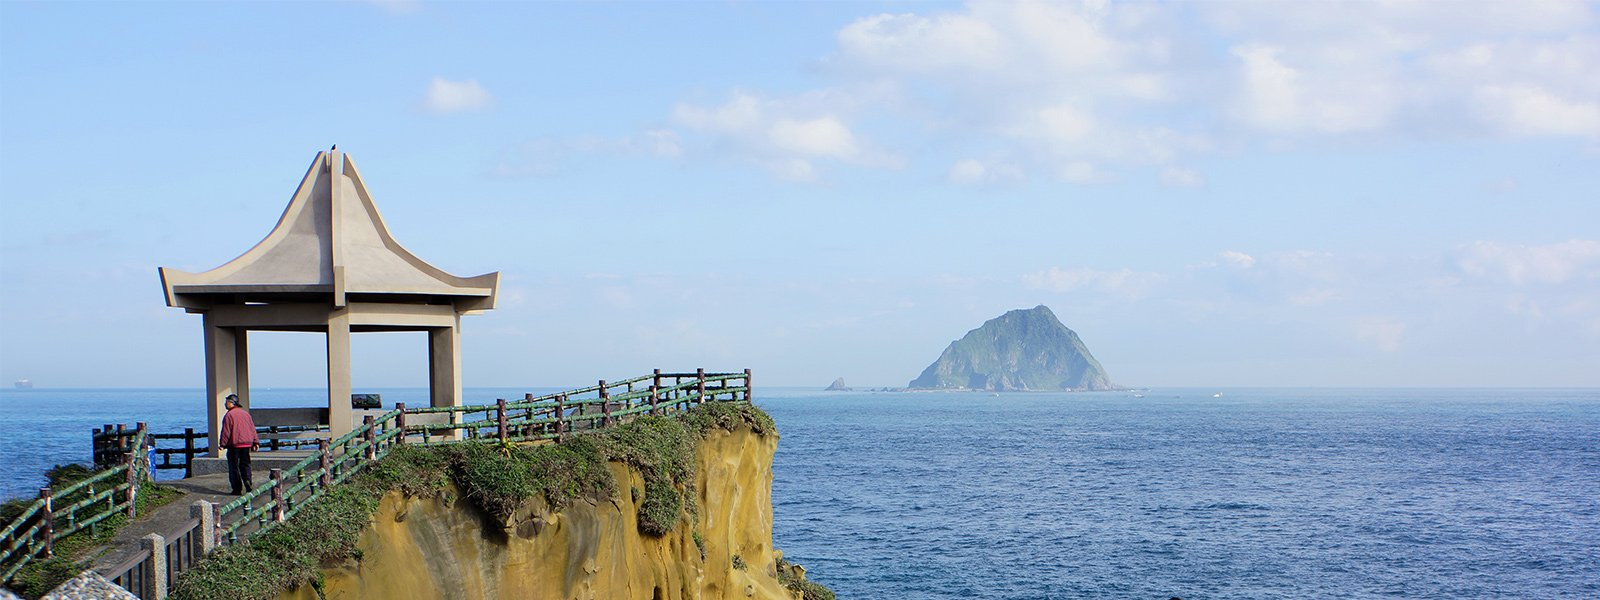 Picture of the Keelung Islet, Taiwan. Photo: lienyuan lee [CC BY 3.0 (https://creativecommons.org/licenses/by/3.0)]